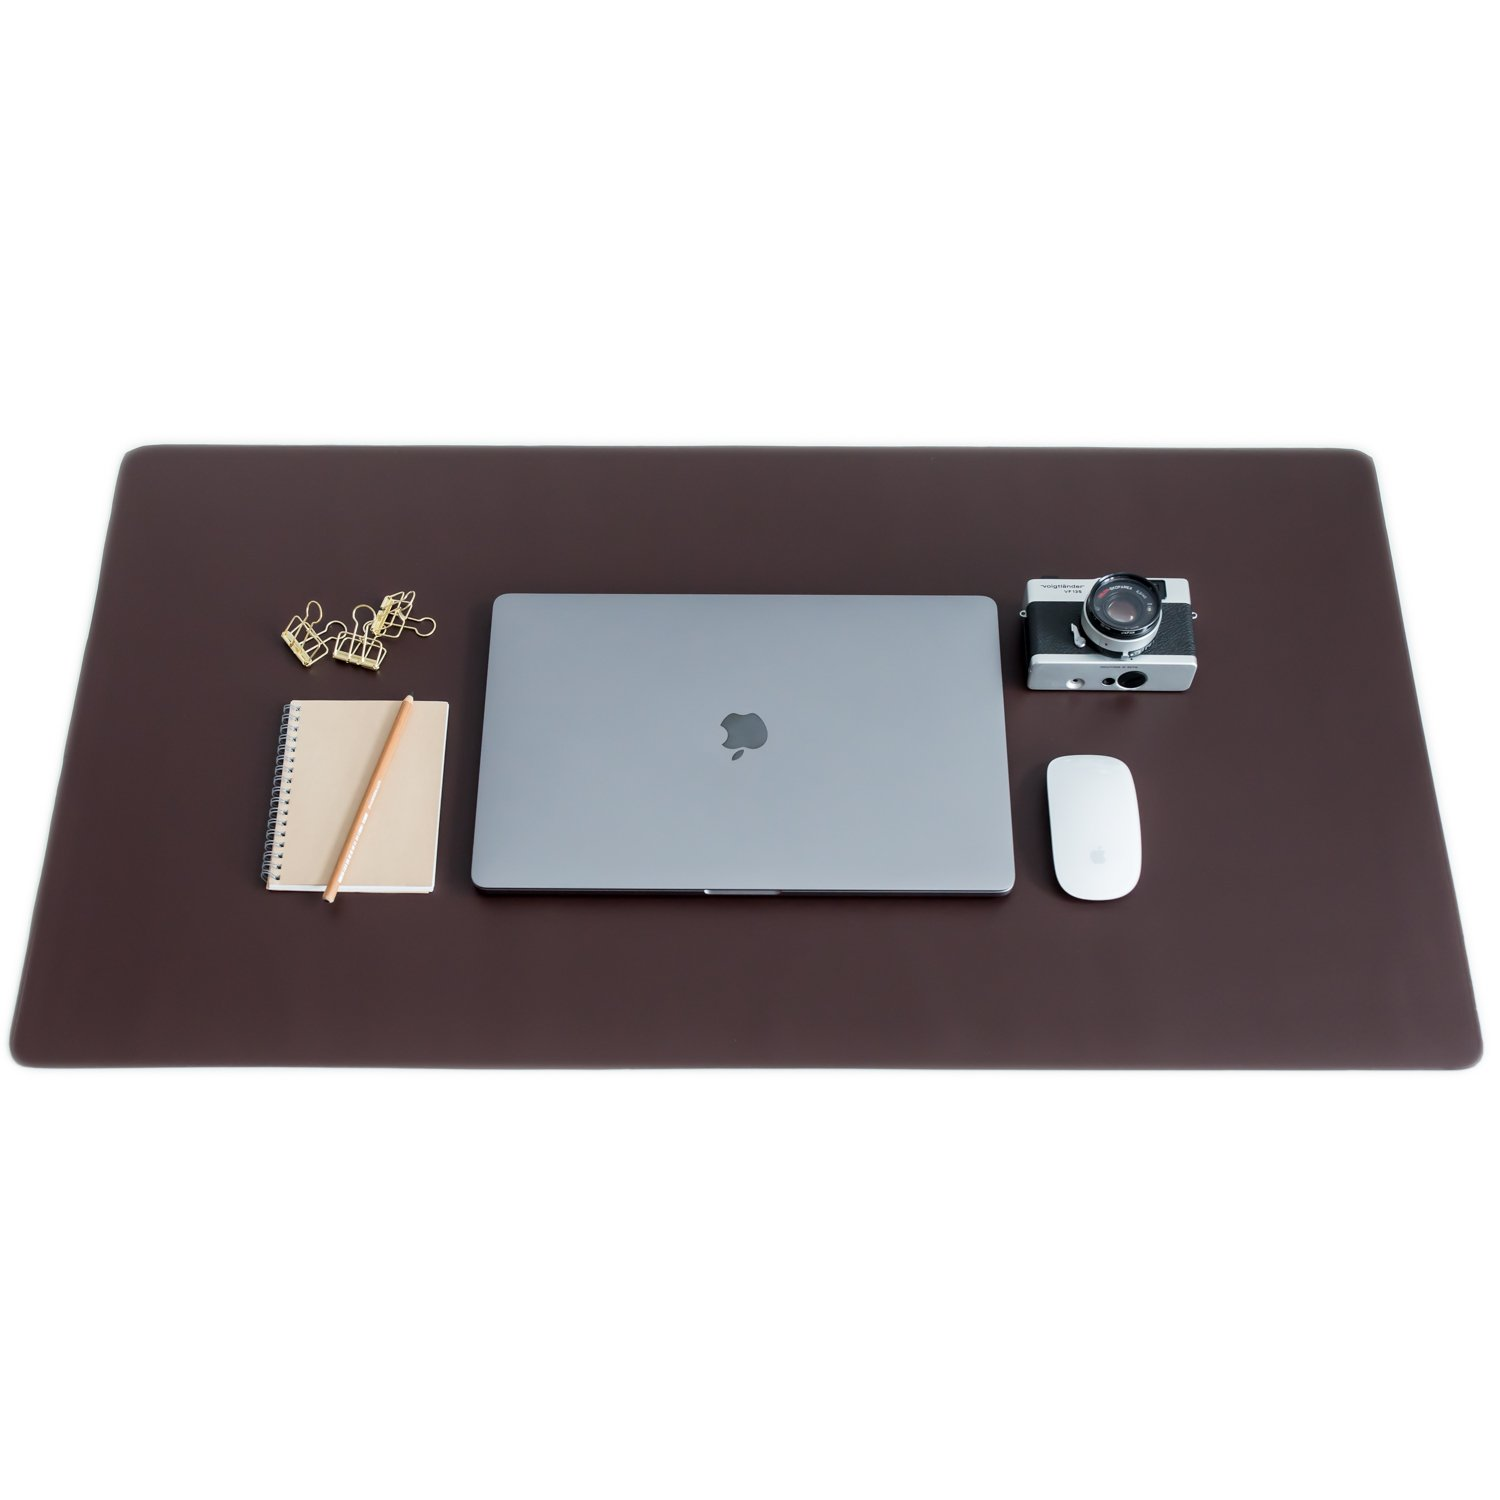 ZBRANDS // Brown Leather Smooth Desk Mat Pad Blotter Protector, Extended Non-Slip Rectangular, Laptop Keyboard Mouse Pad (36'' x 20'')